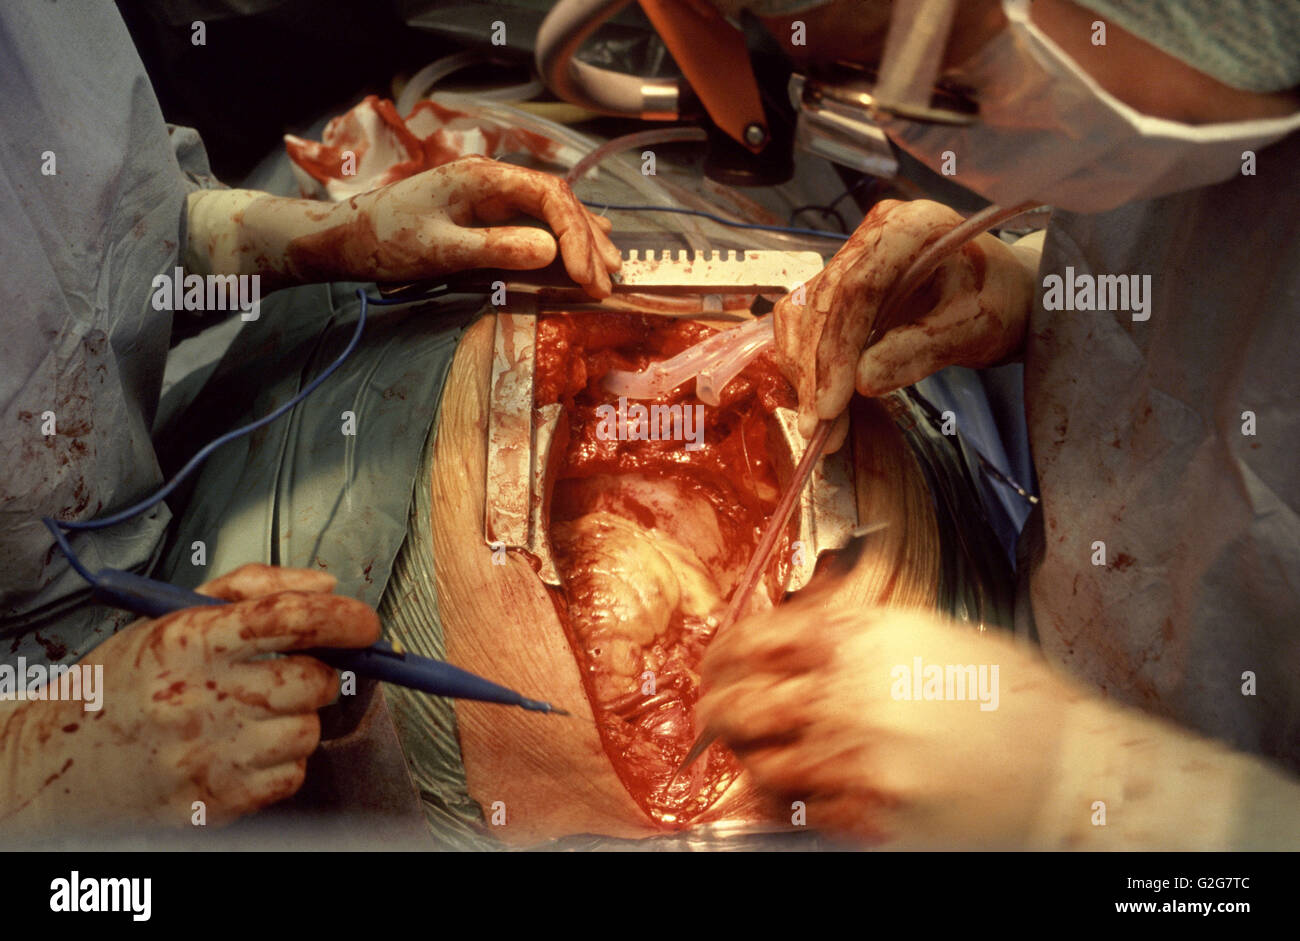 Surgeons perform open heart surgery at Sahlgrenska Hospital in Goteborg, Sweden. - Stock Image